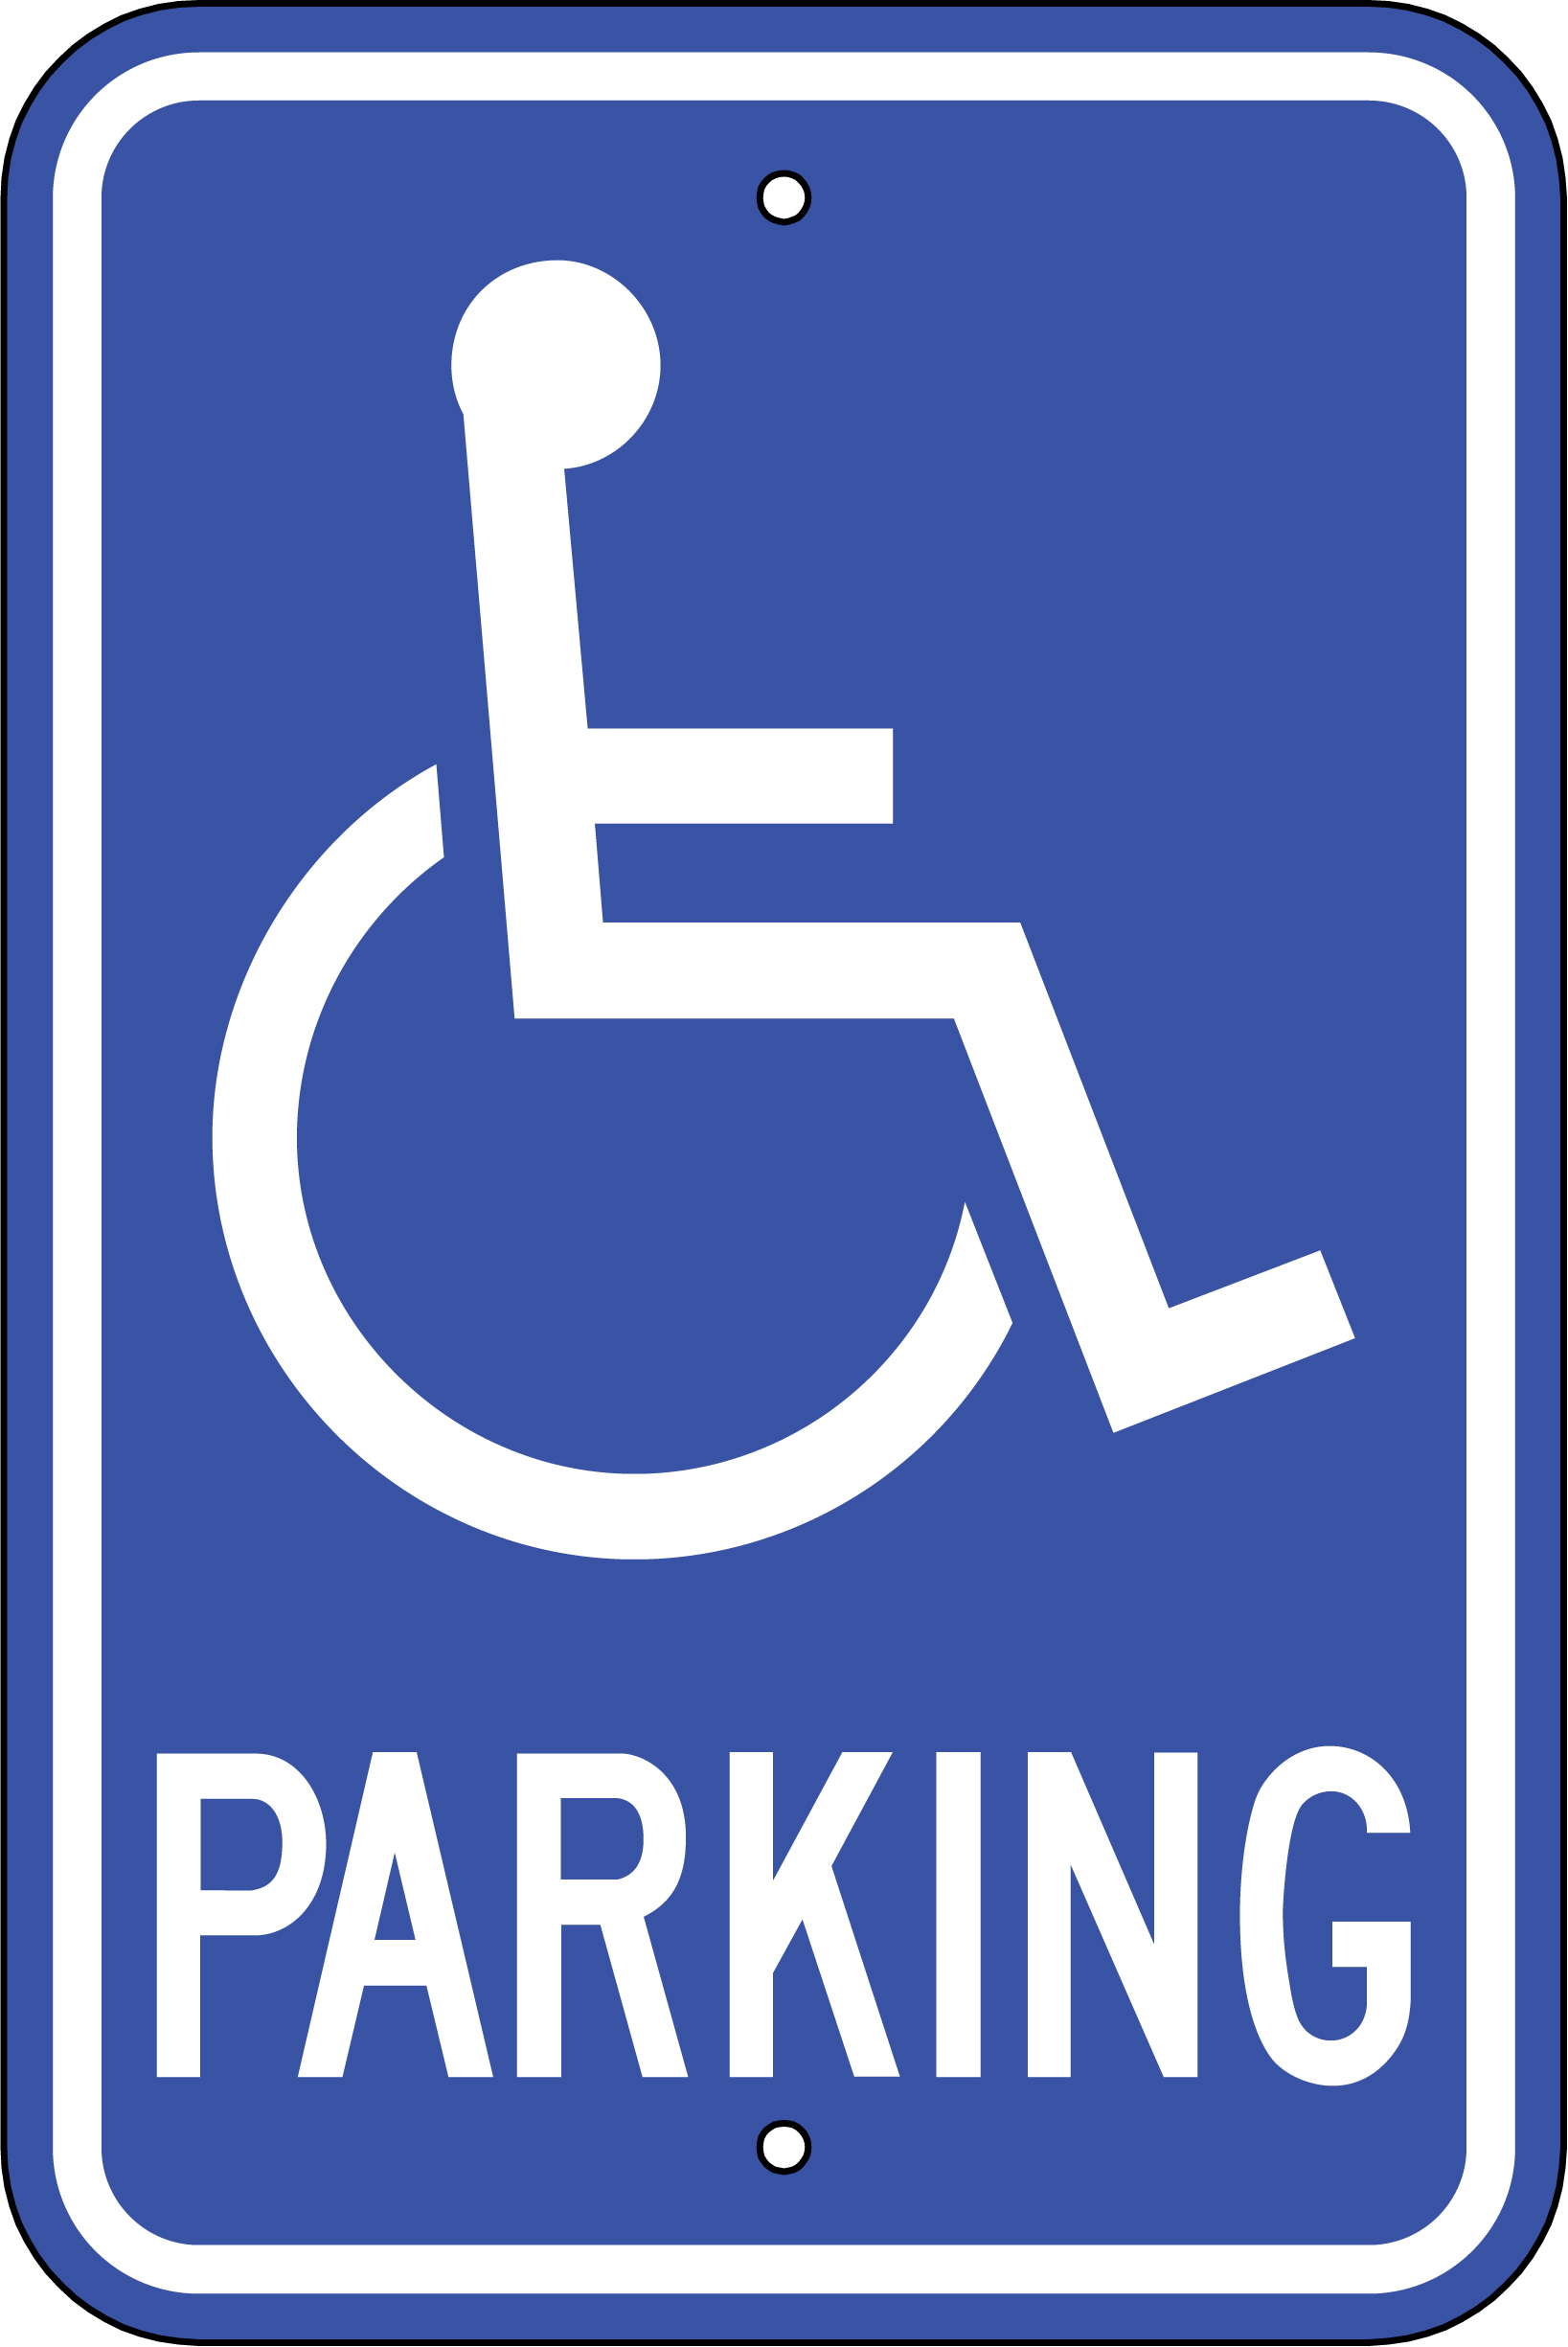 Handicap parking clipart.